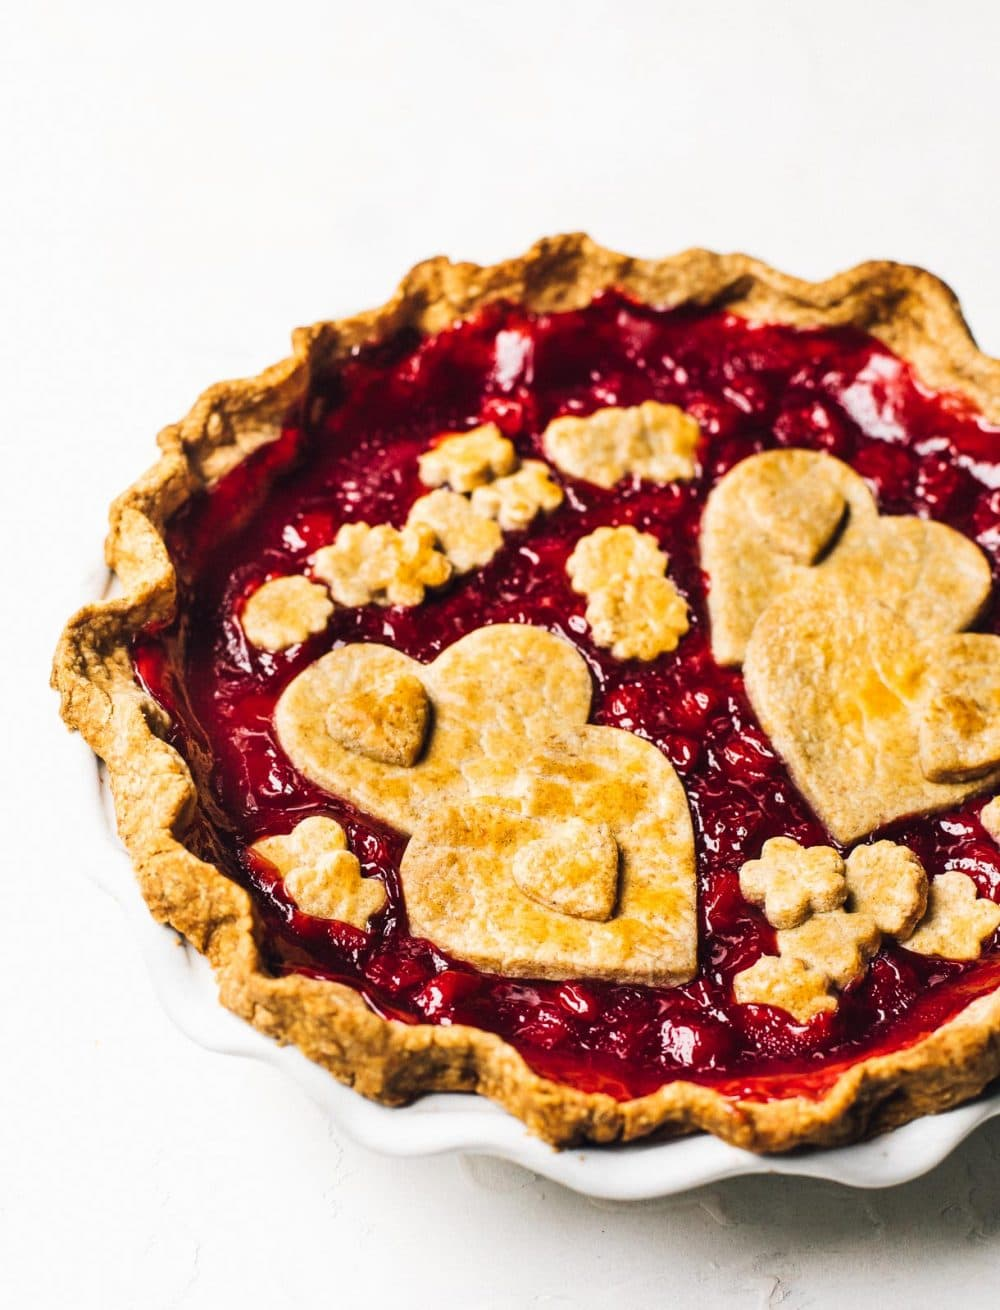 tart cherry pie in a white pie plate, with heart shapes on top cut from pastry